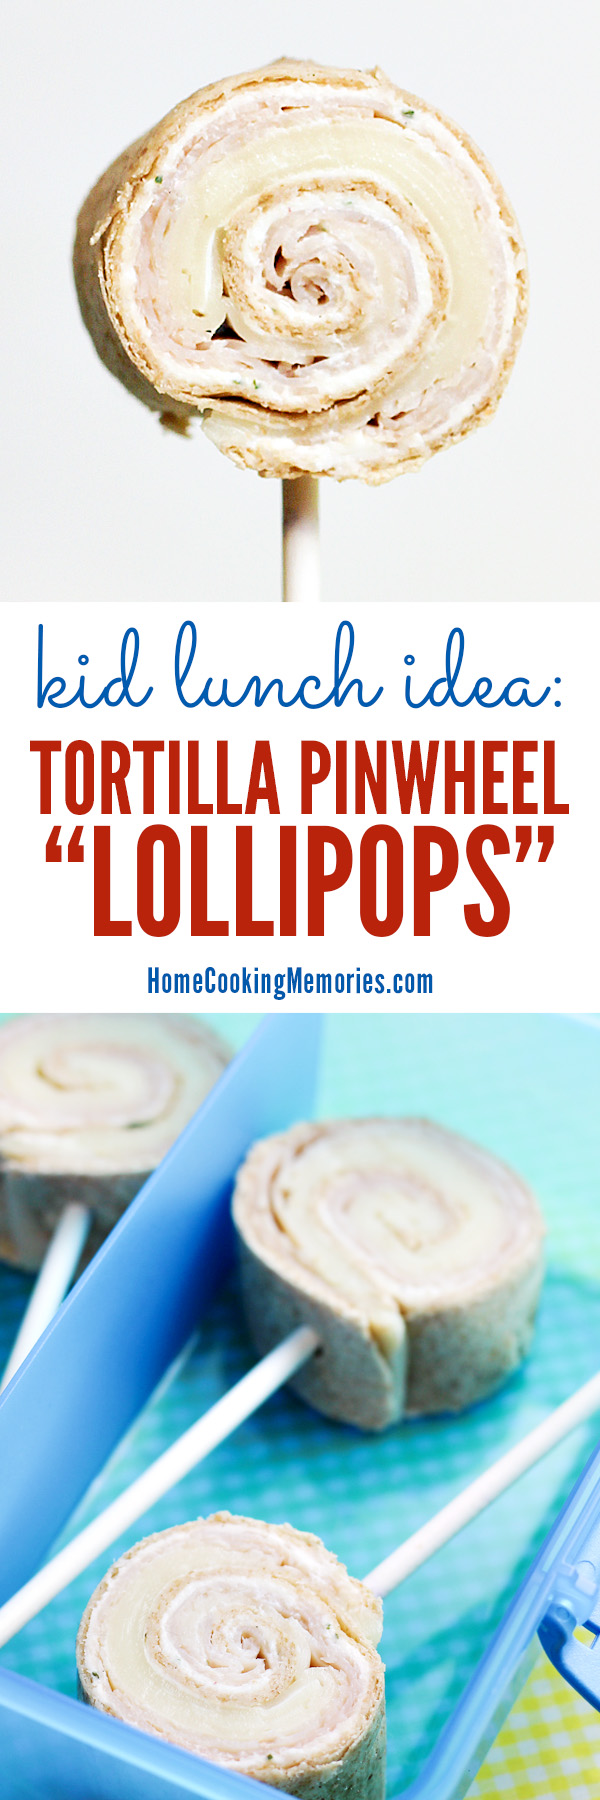 Kid Lunch Ideas: Tortilla Pinwheel Lollipops Recipe